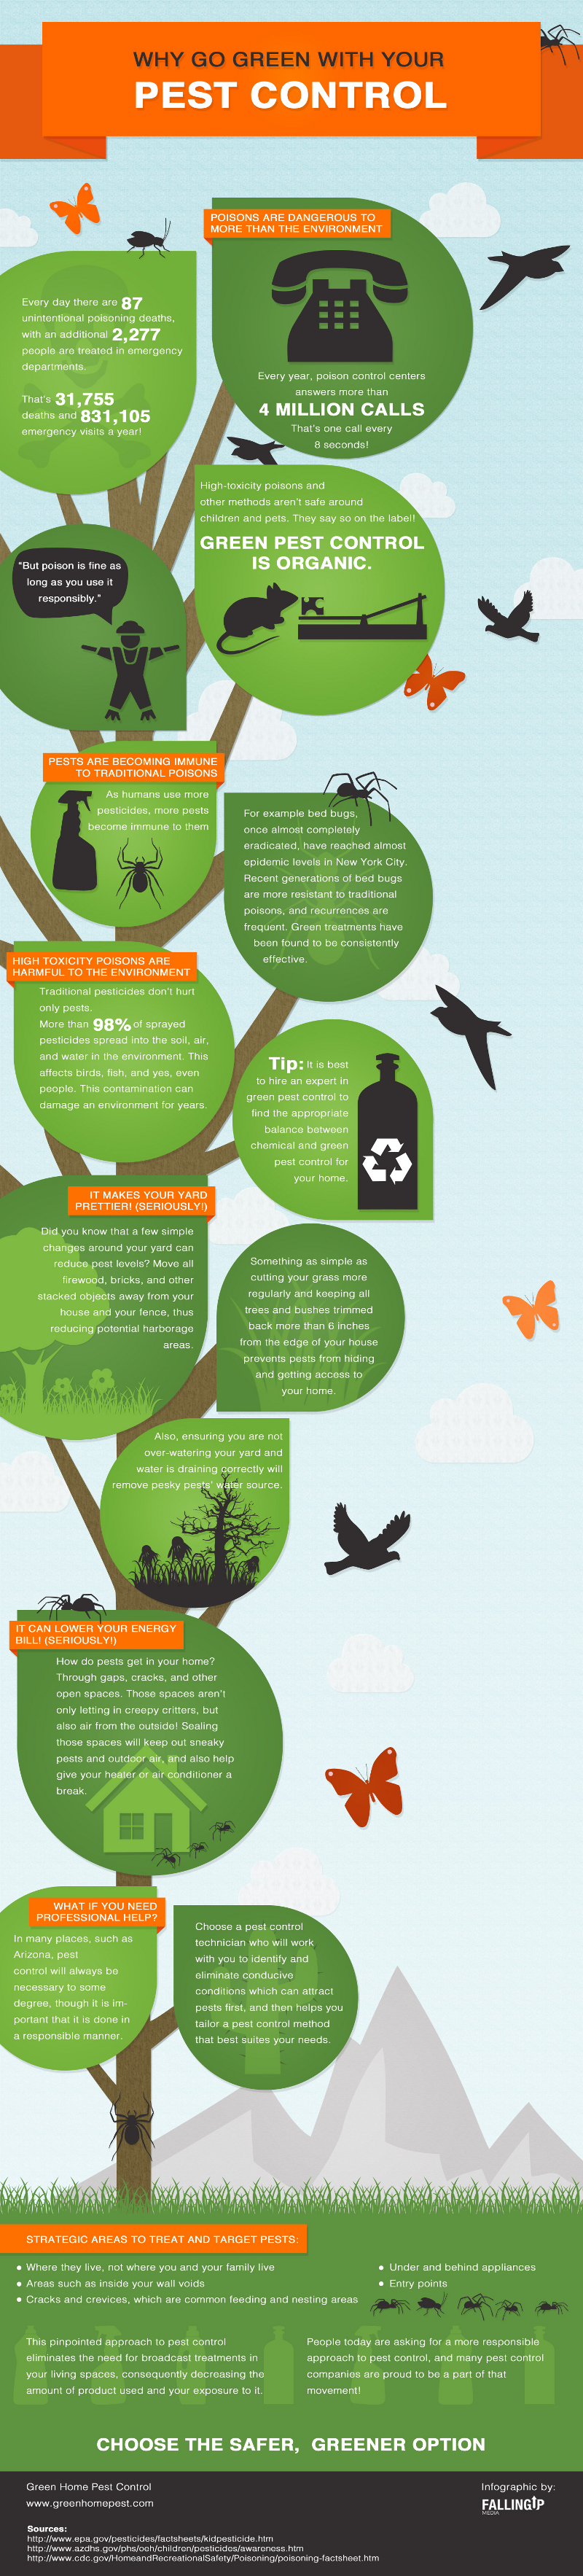 Benefits of Green Pest Control